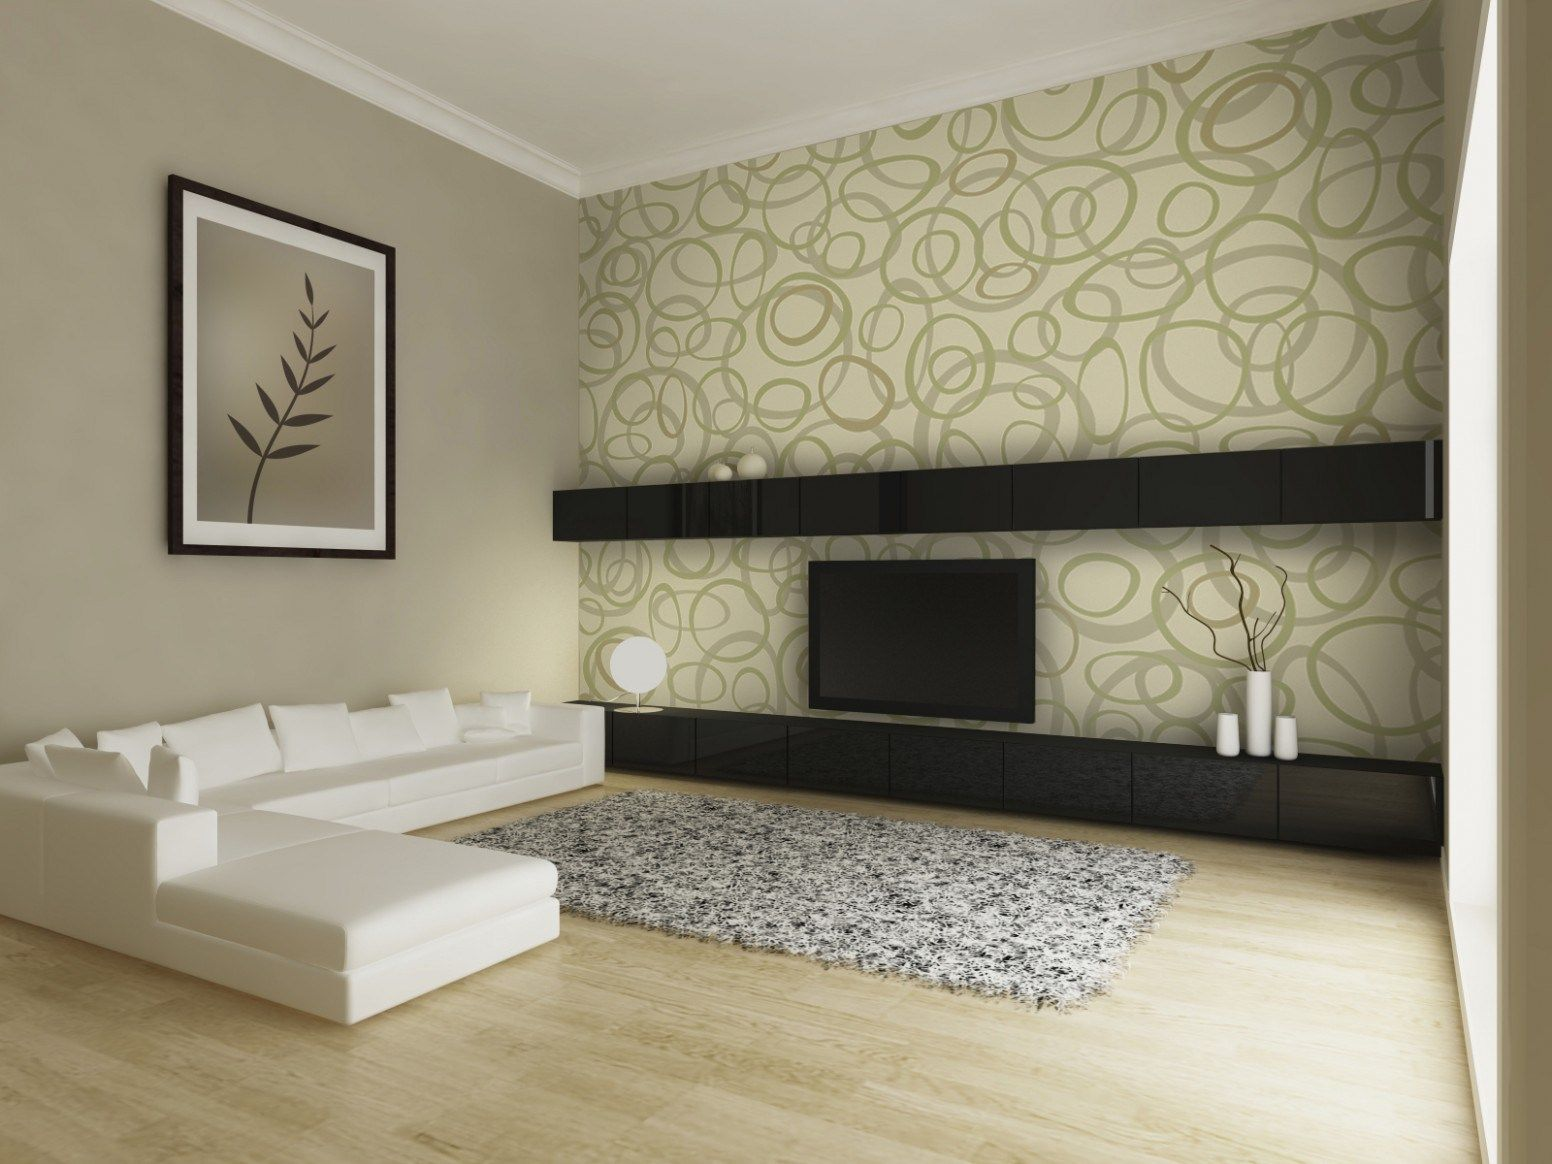 Five common misconceptions about wallpaper interior design wallpaper interior design